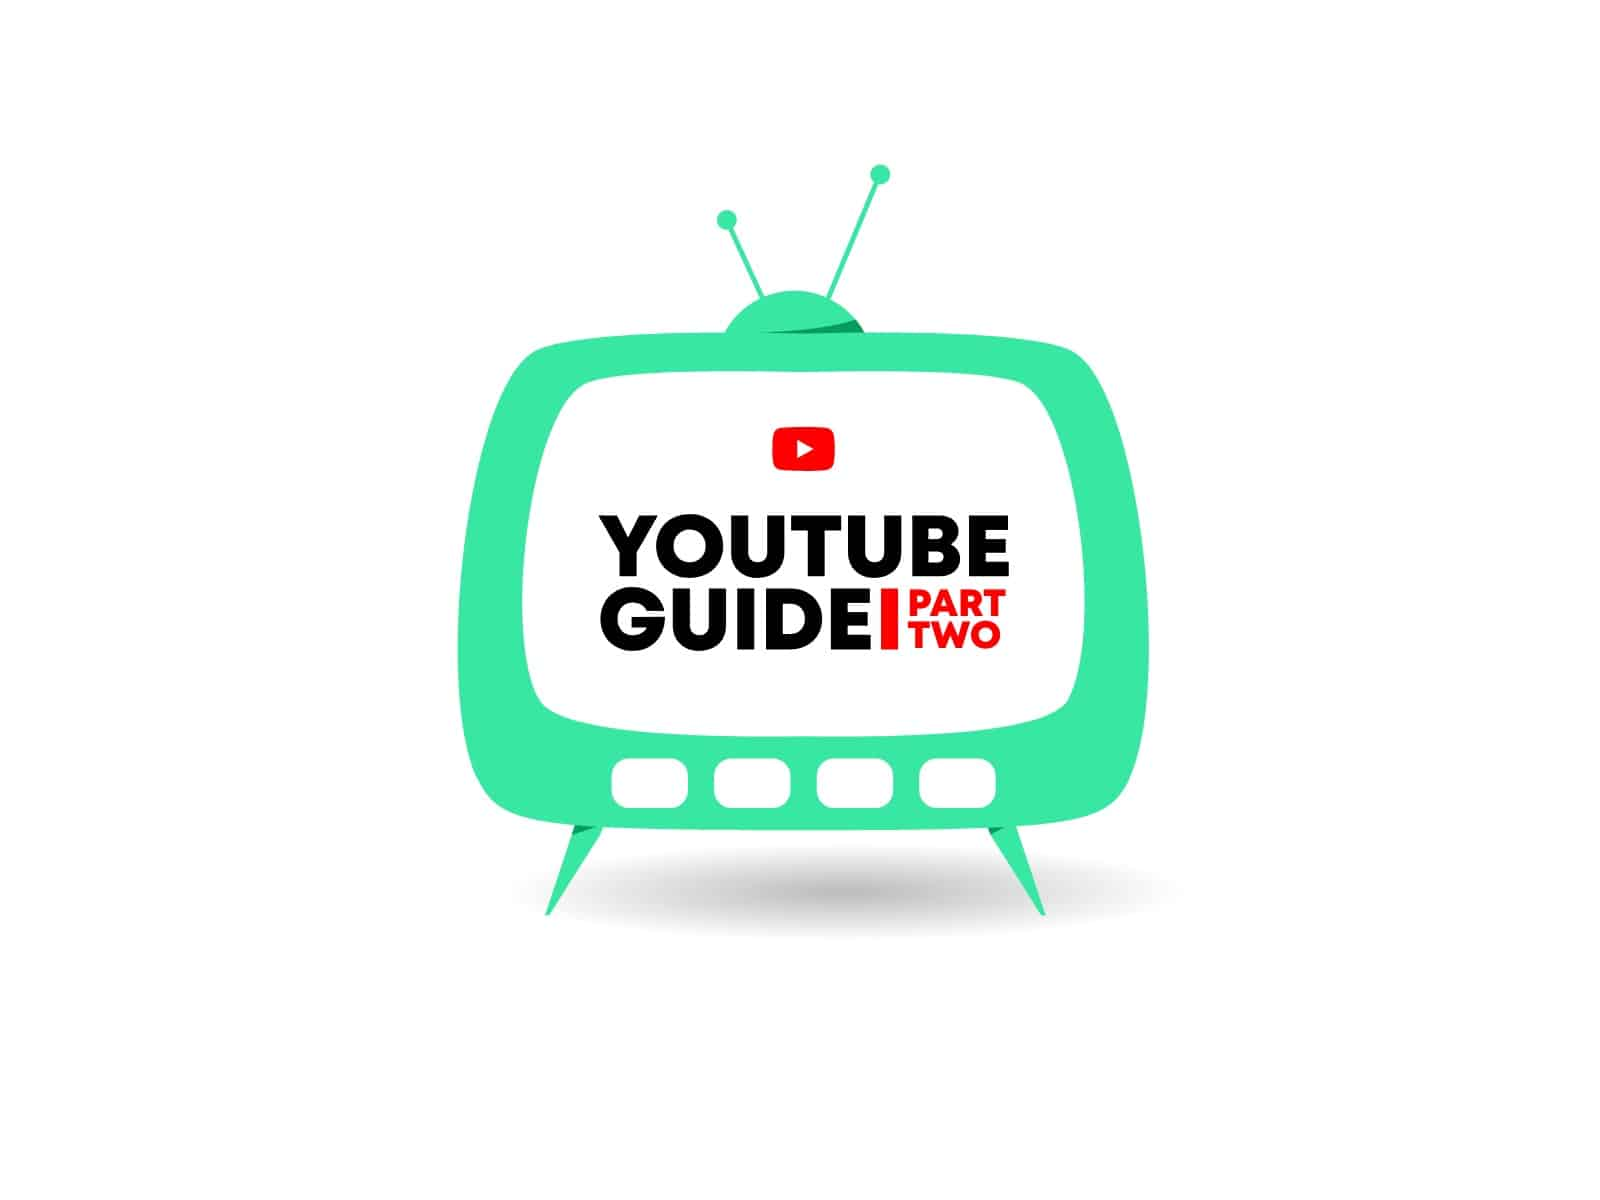 YouTube Guide Part Two - Kanuka digital